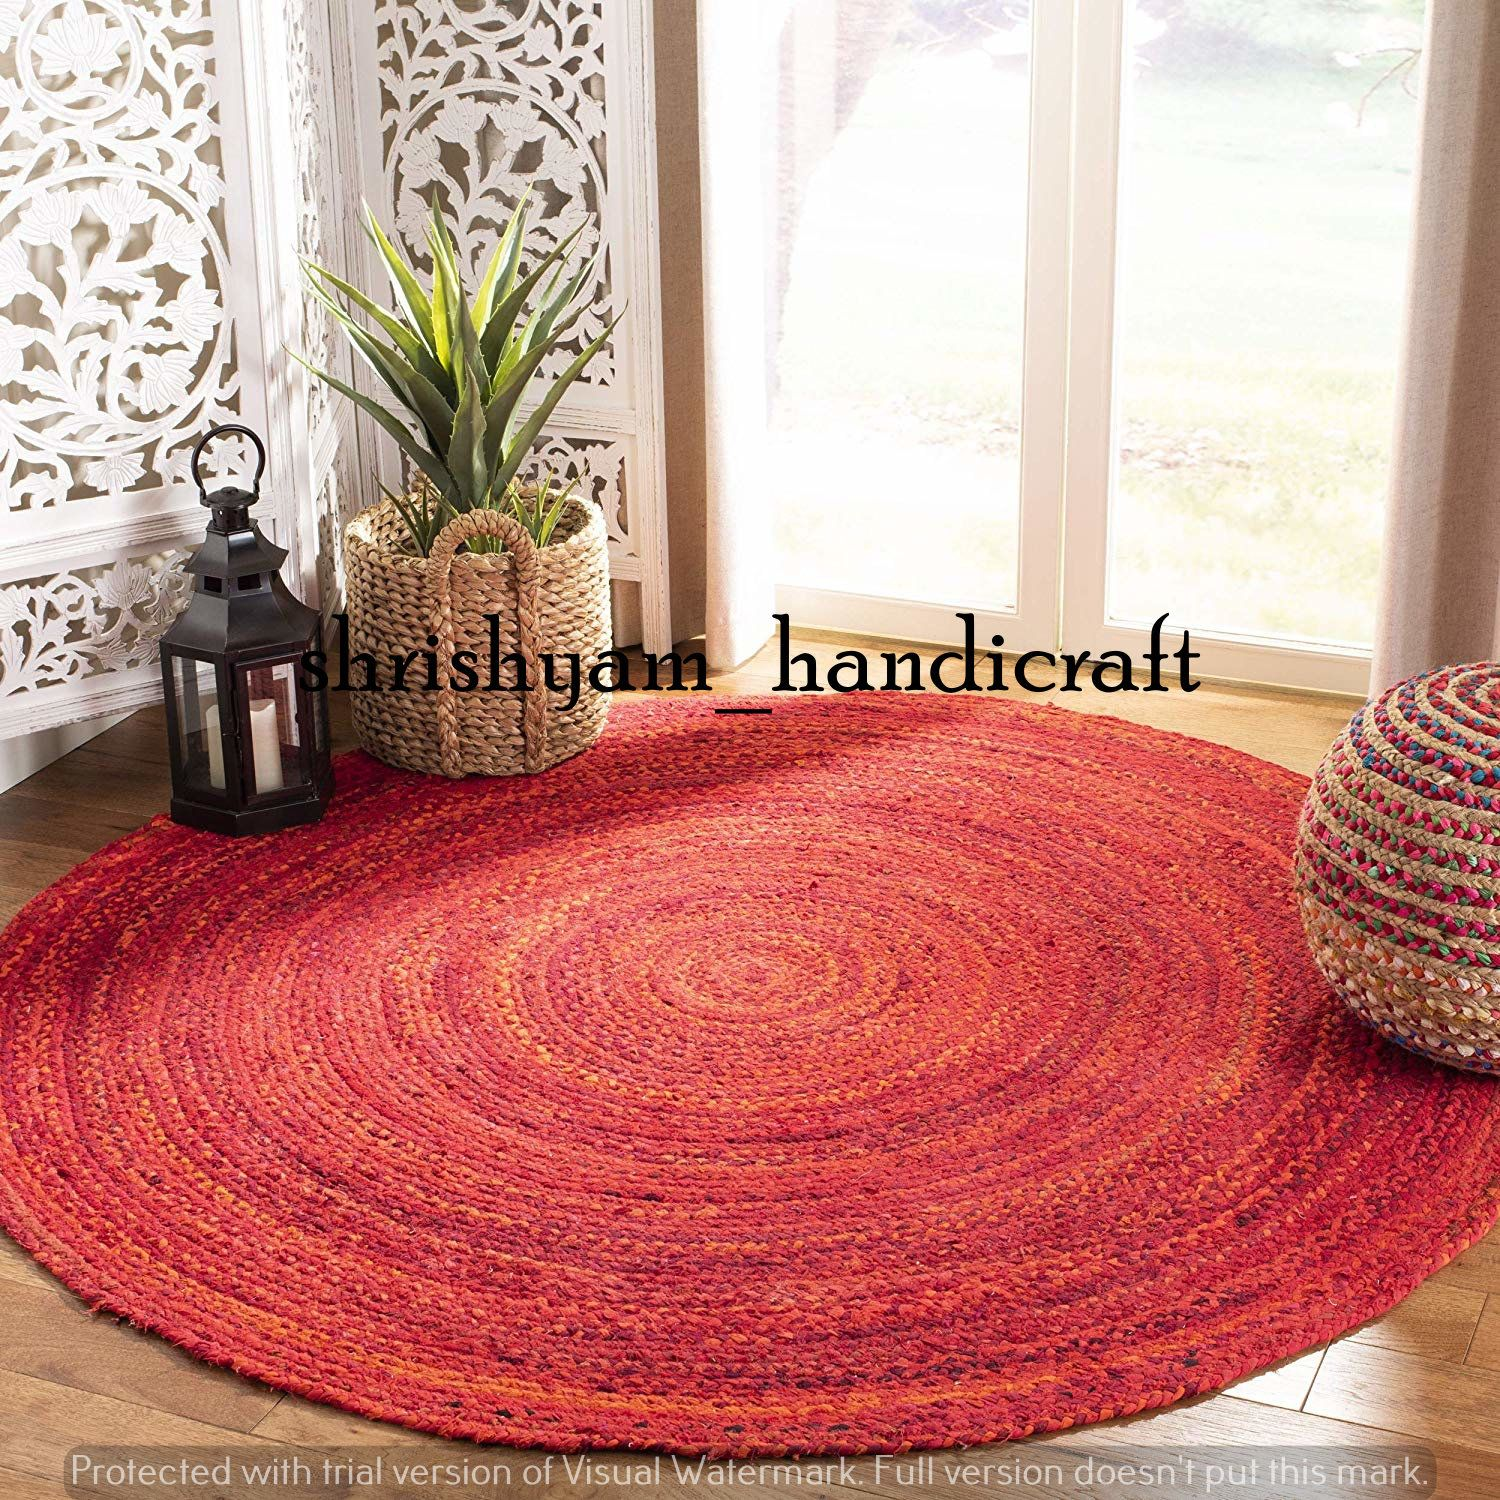 2 Feet Small Size Braided Round Rug Bohemian Decor Colourful Area Rug Round Rug Handmade Meditation Mat Circle Rug Home Decor Door Mat In 2020 Round Braided Rug Rugs On Carpet Floor Rugs